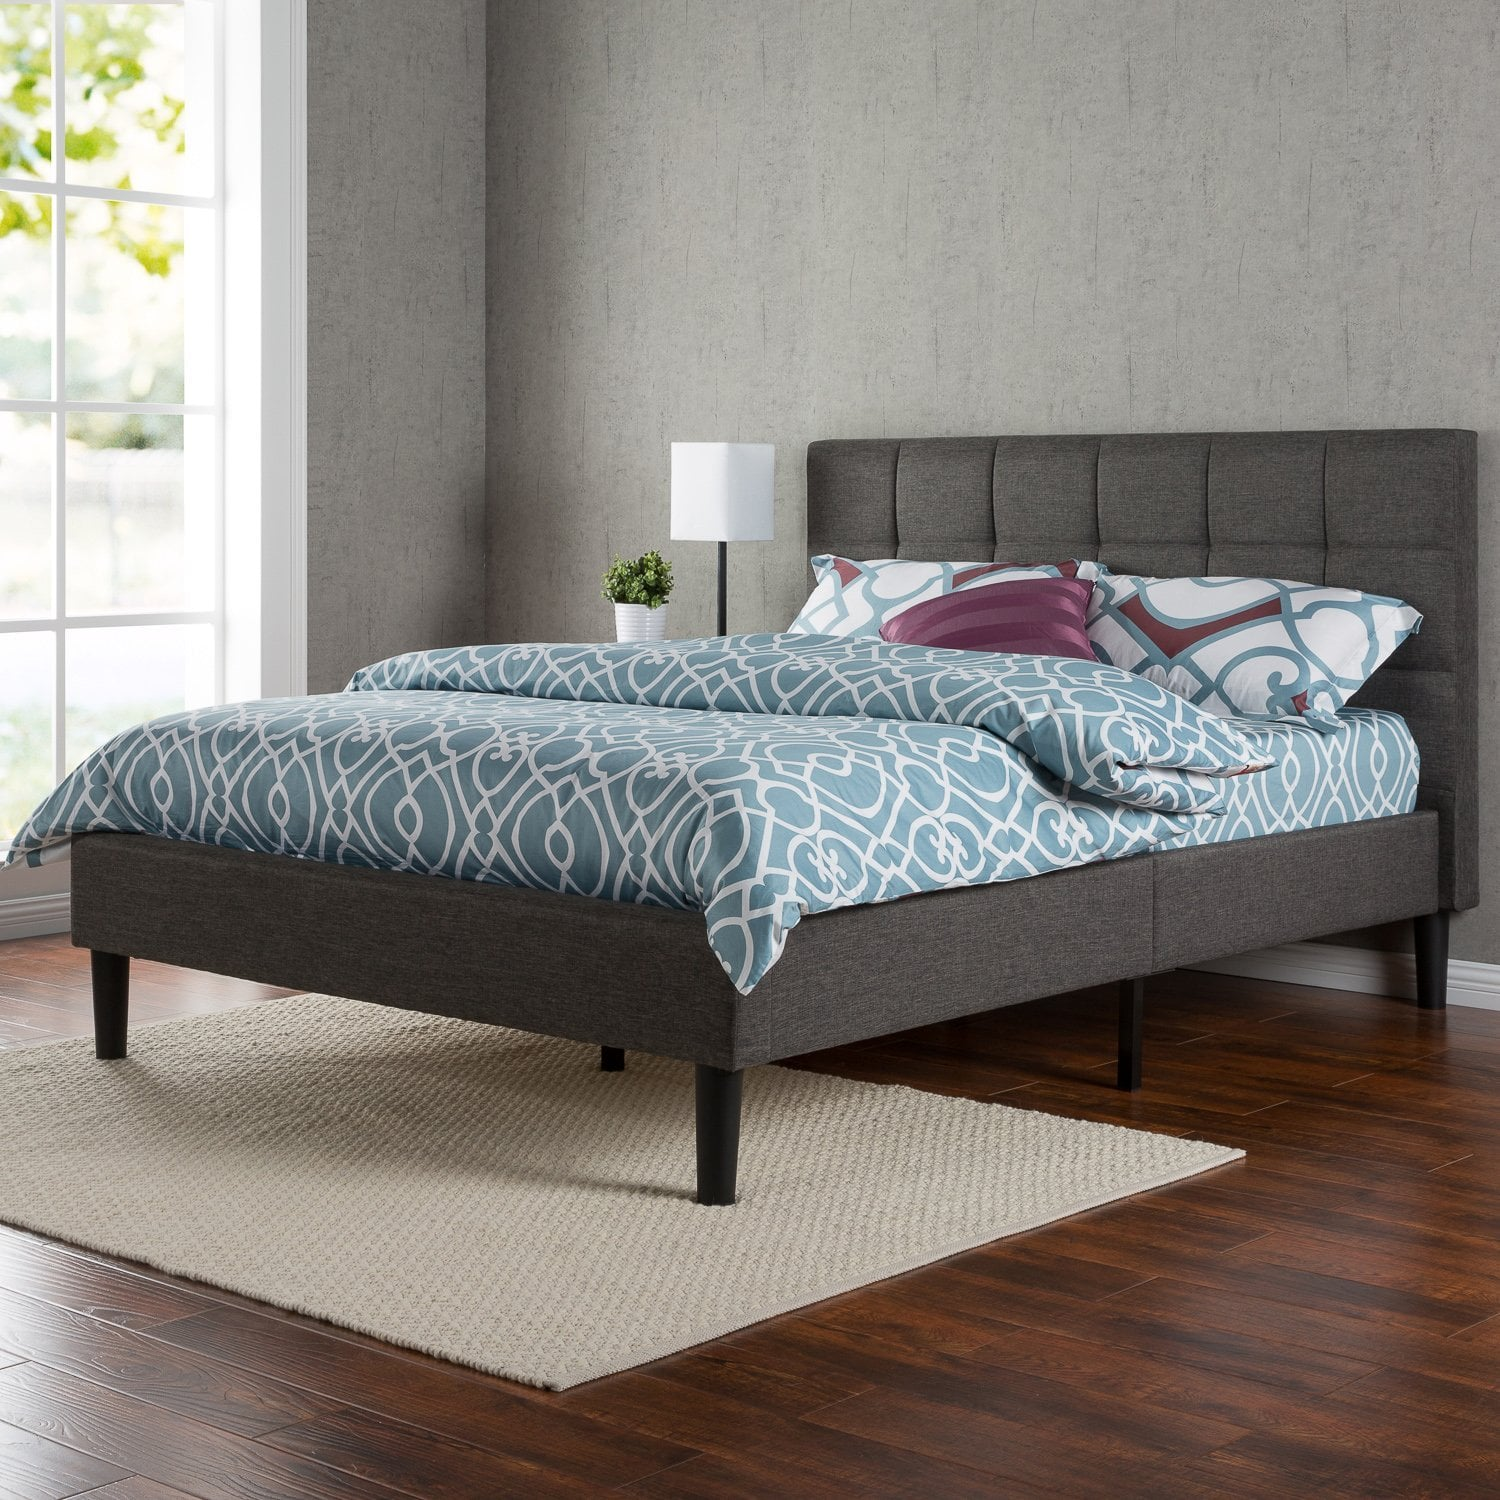 Cheap Bed Frame From Amazon Popsugar Home